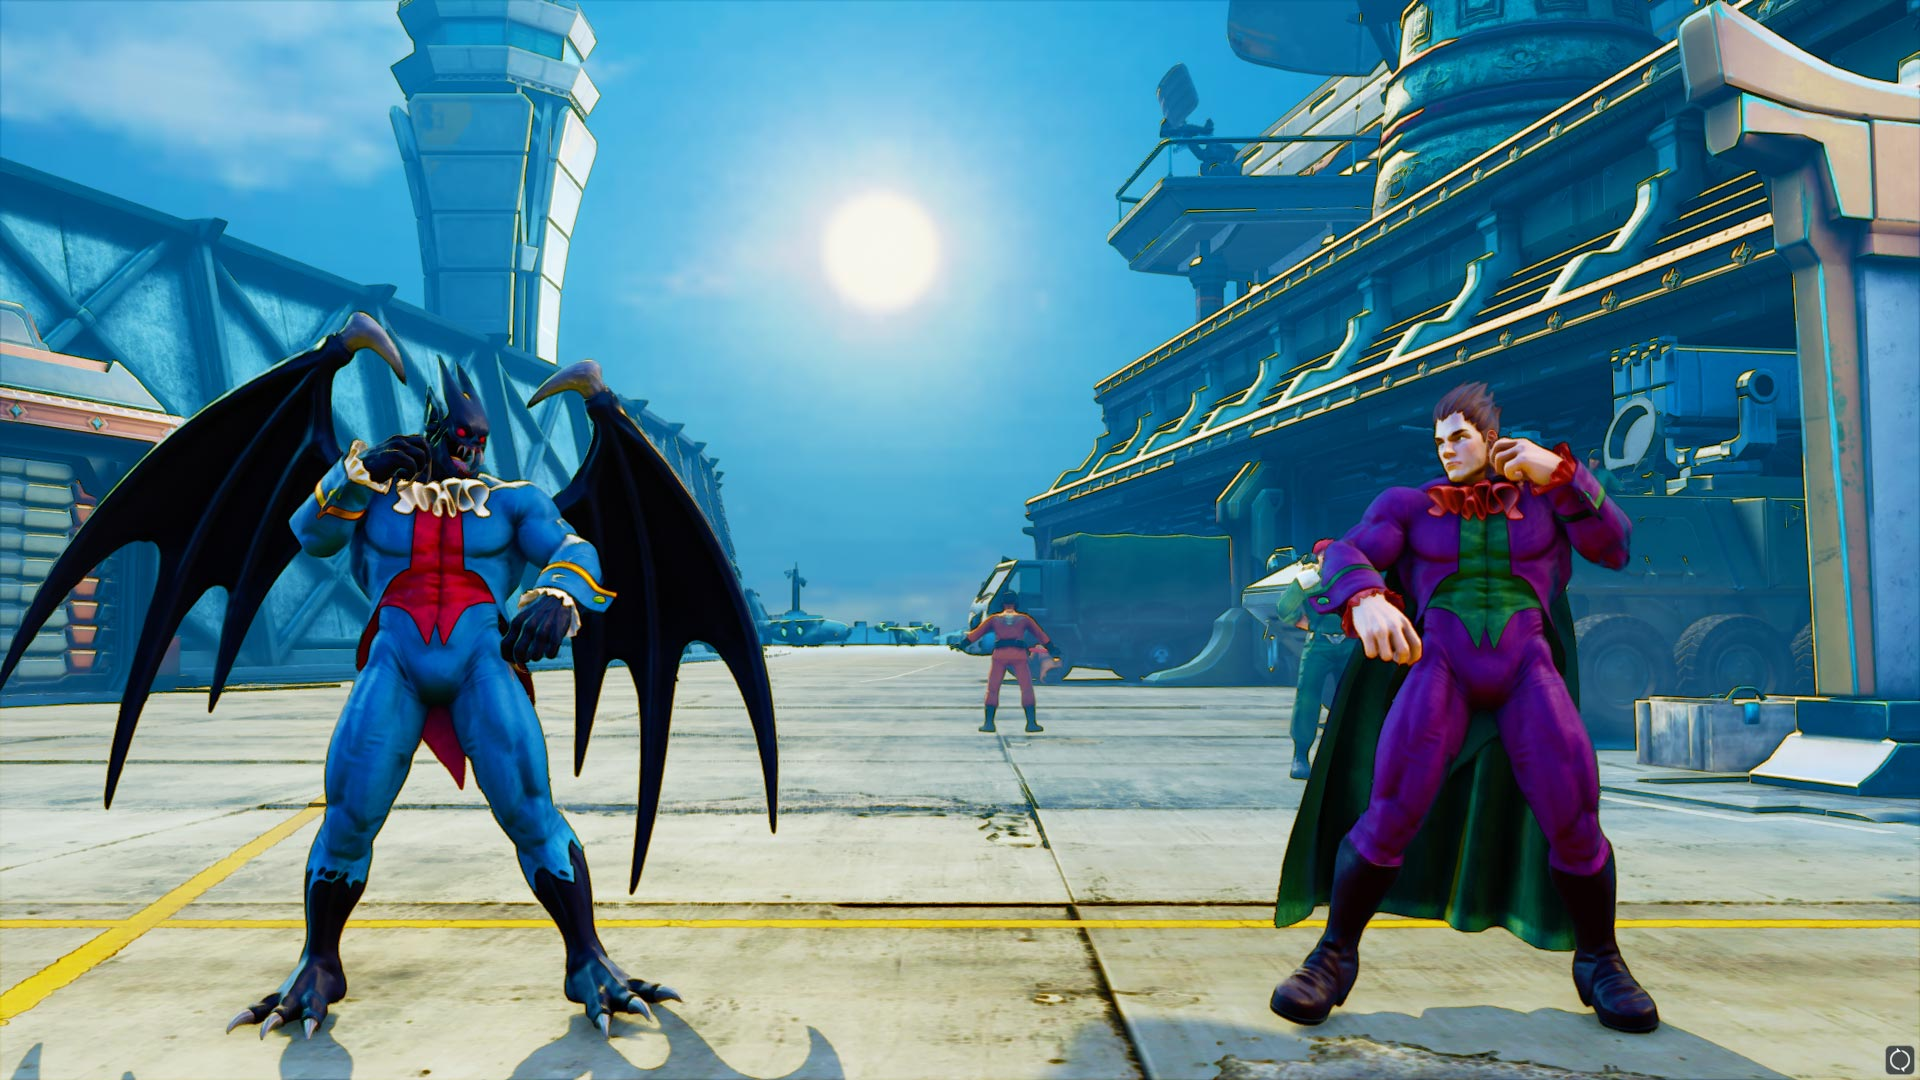 New Darkstalkers costumes in Street Fighter 5 3 out of 17 image gallery